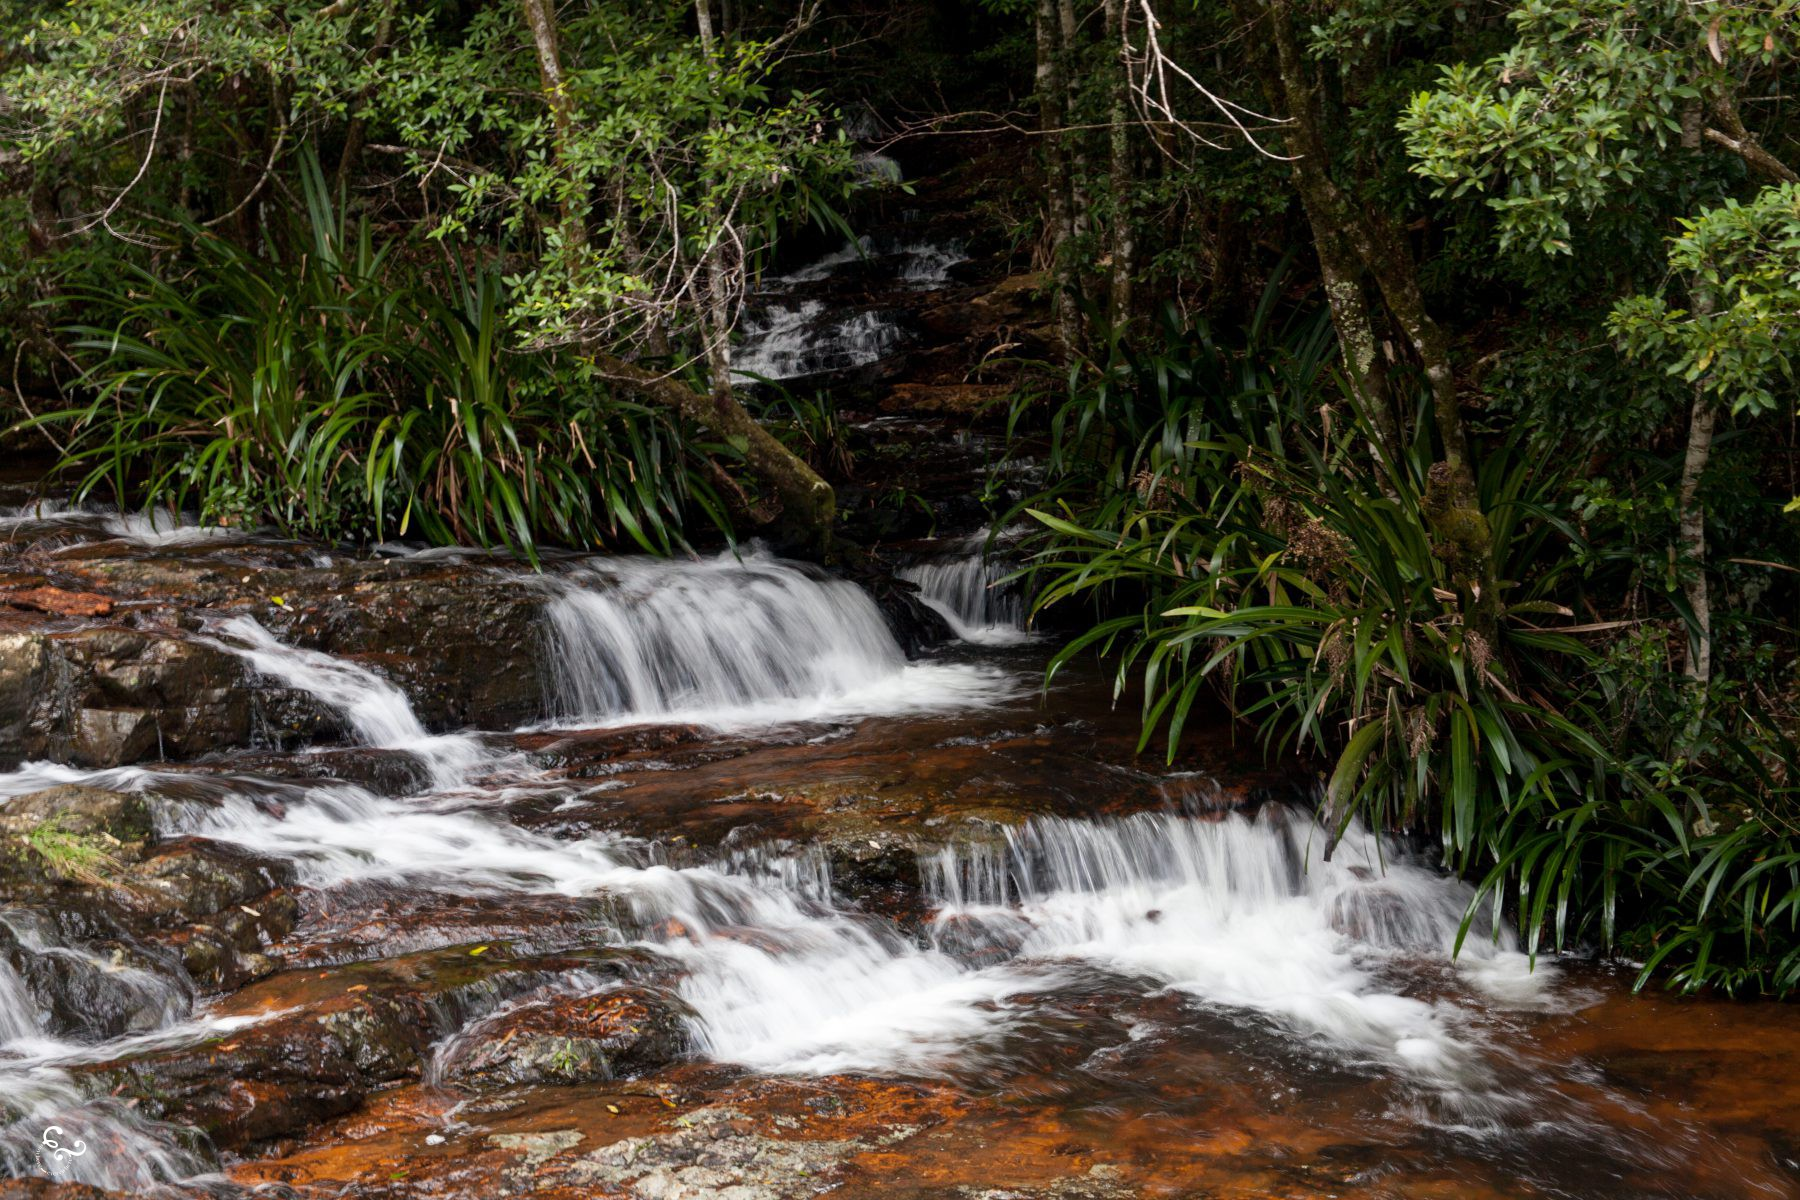 Purlingbrook Waterfalls Nowhere & Everywhere Gold Coast Hinterland Brisbane Lis Dingjan Photography Queensland #thisisqueensland Springbrook O'Reilly's Lamington National Parks